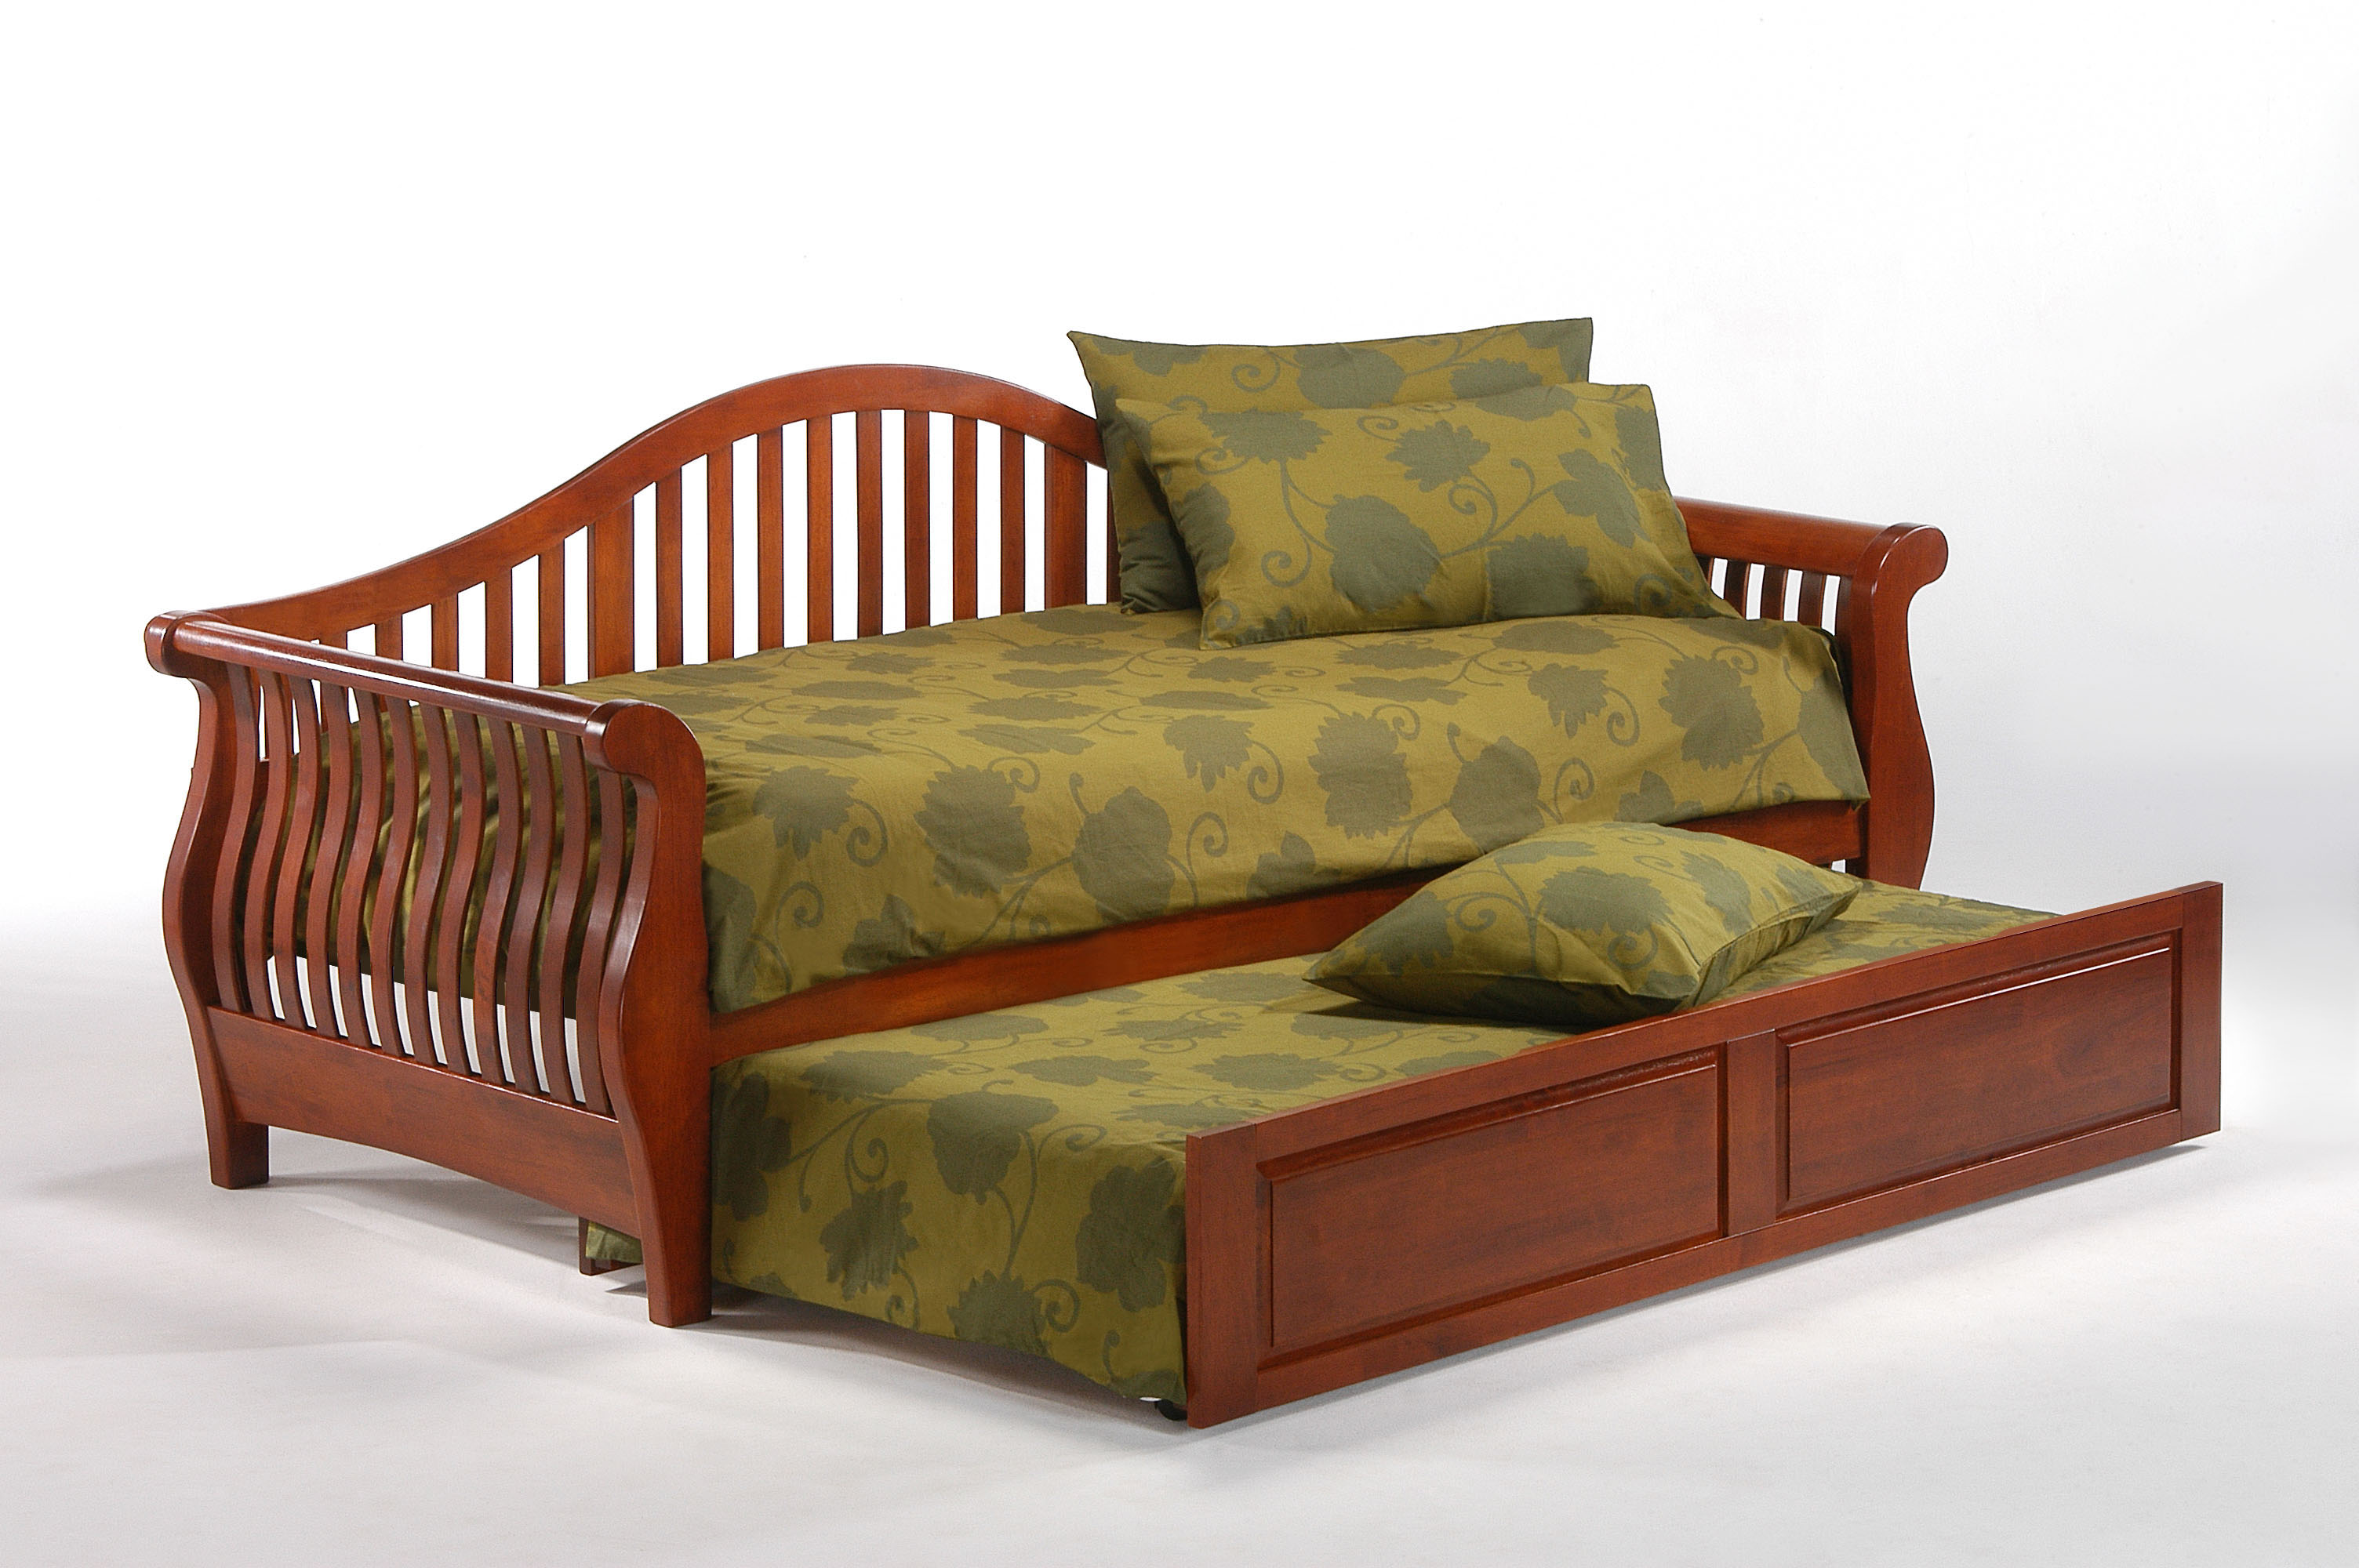 Medium image of     nightfall daybed w trundle open